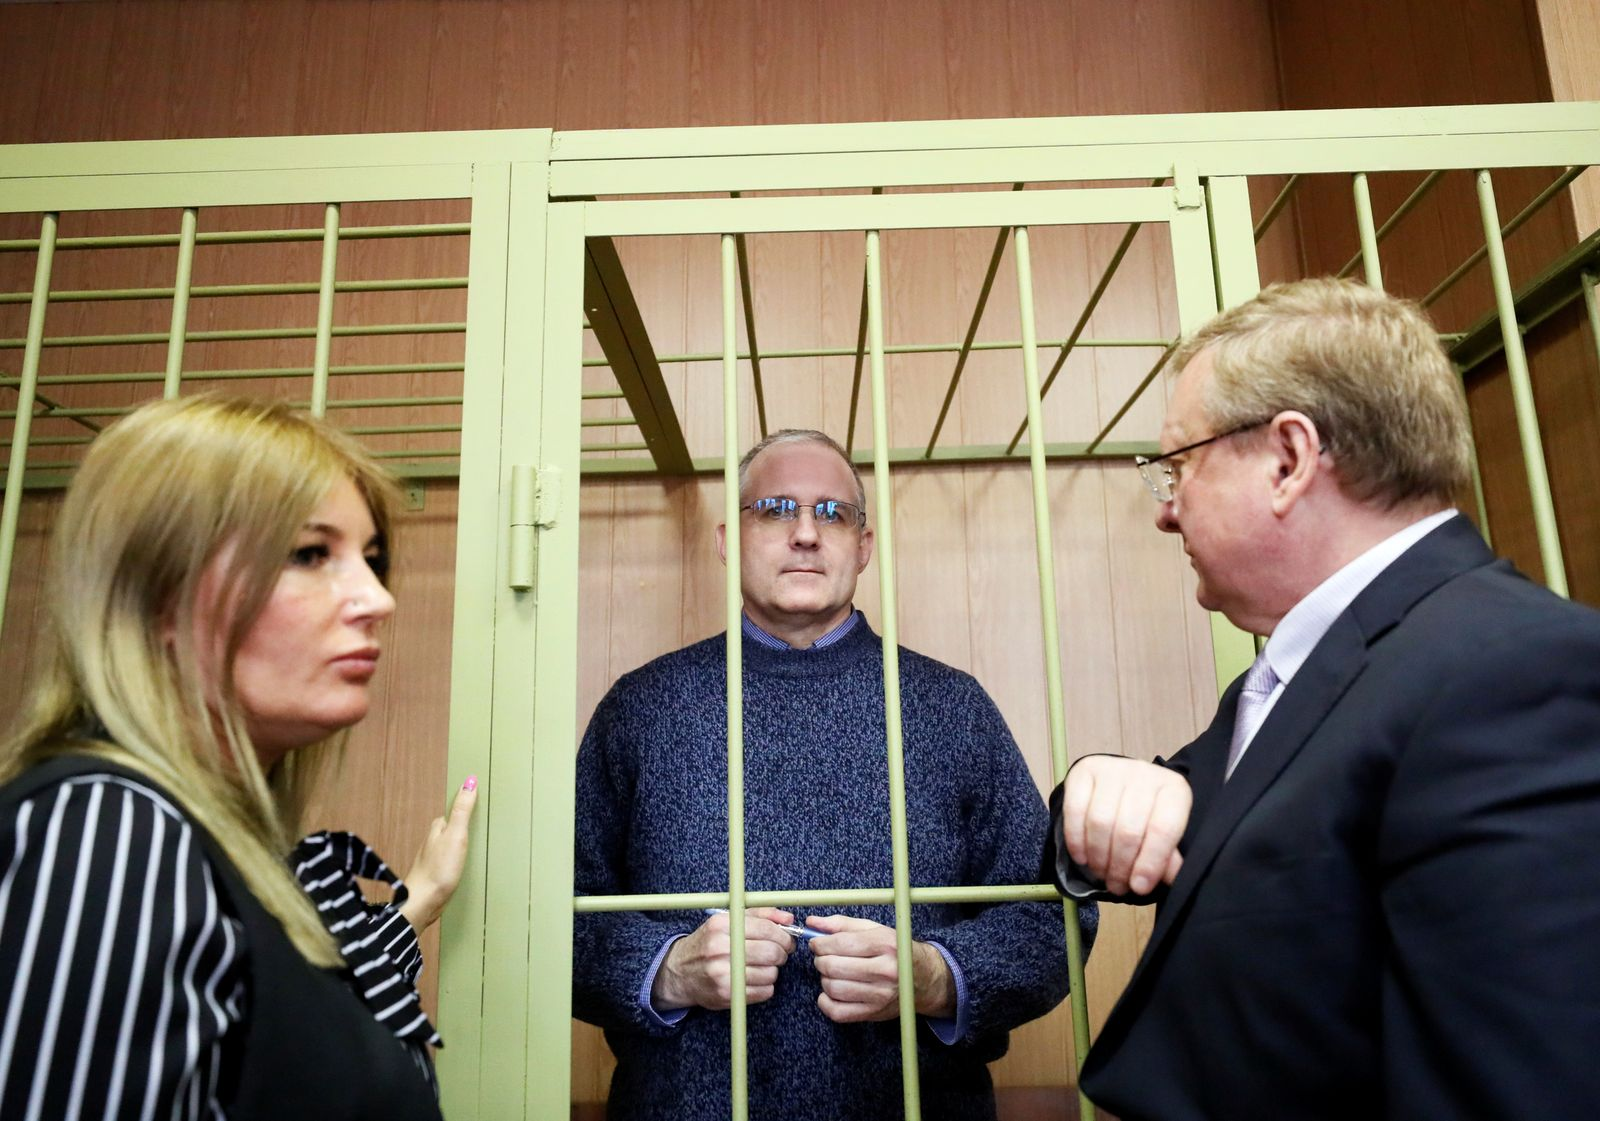 Former U.S. marine Paul Whelan who is being held on suspicion of spying talks with his lawyers Vladimir Zherebenkov and Olga Kralova, as he stands in the courtroom cage after a ruling regarding extension of his detention, in Moscow